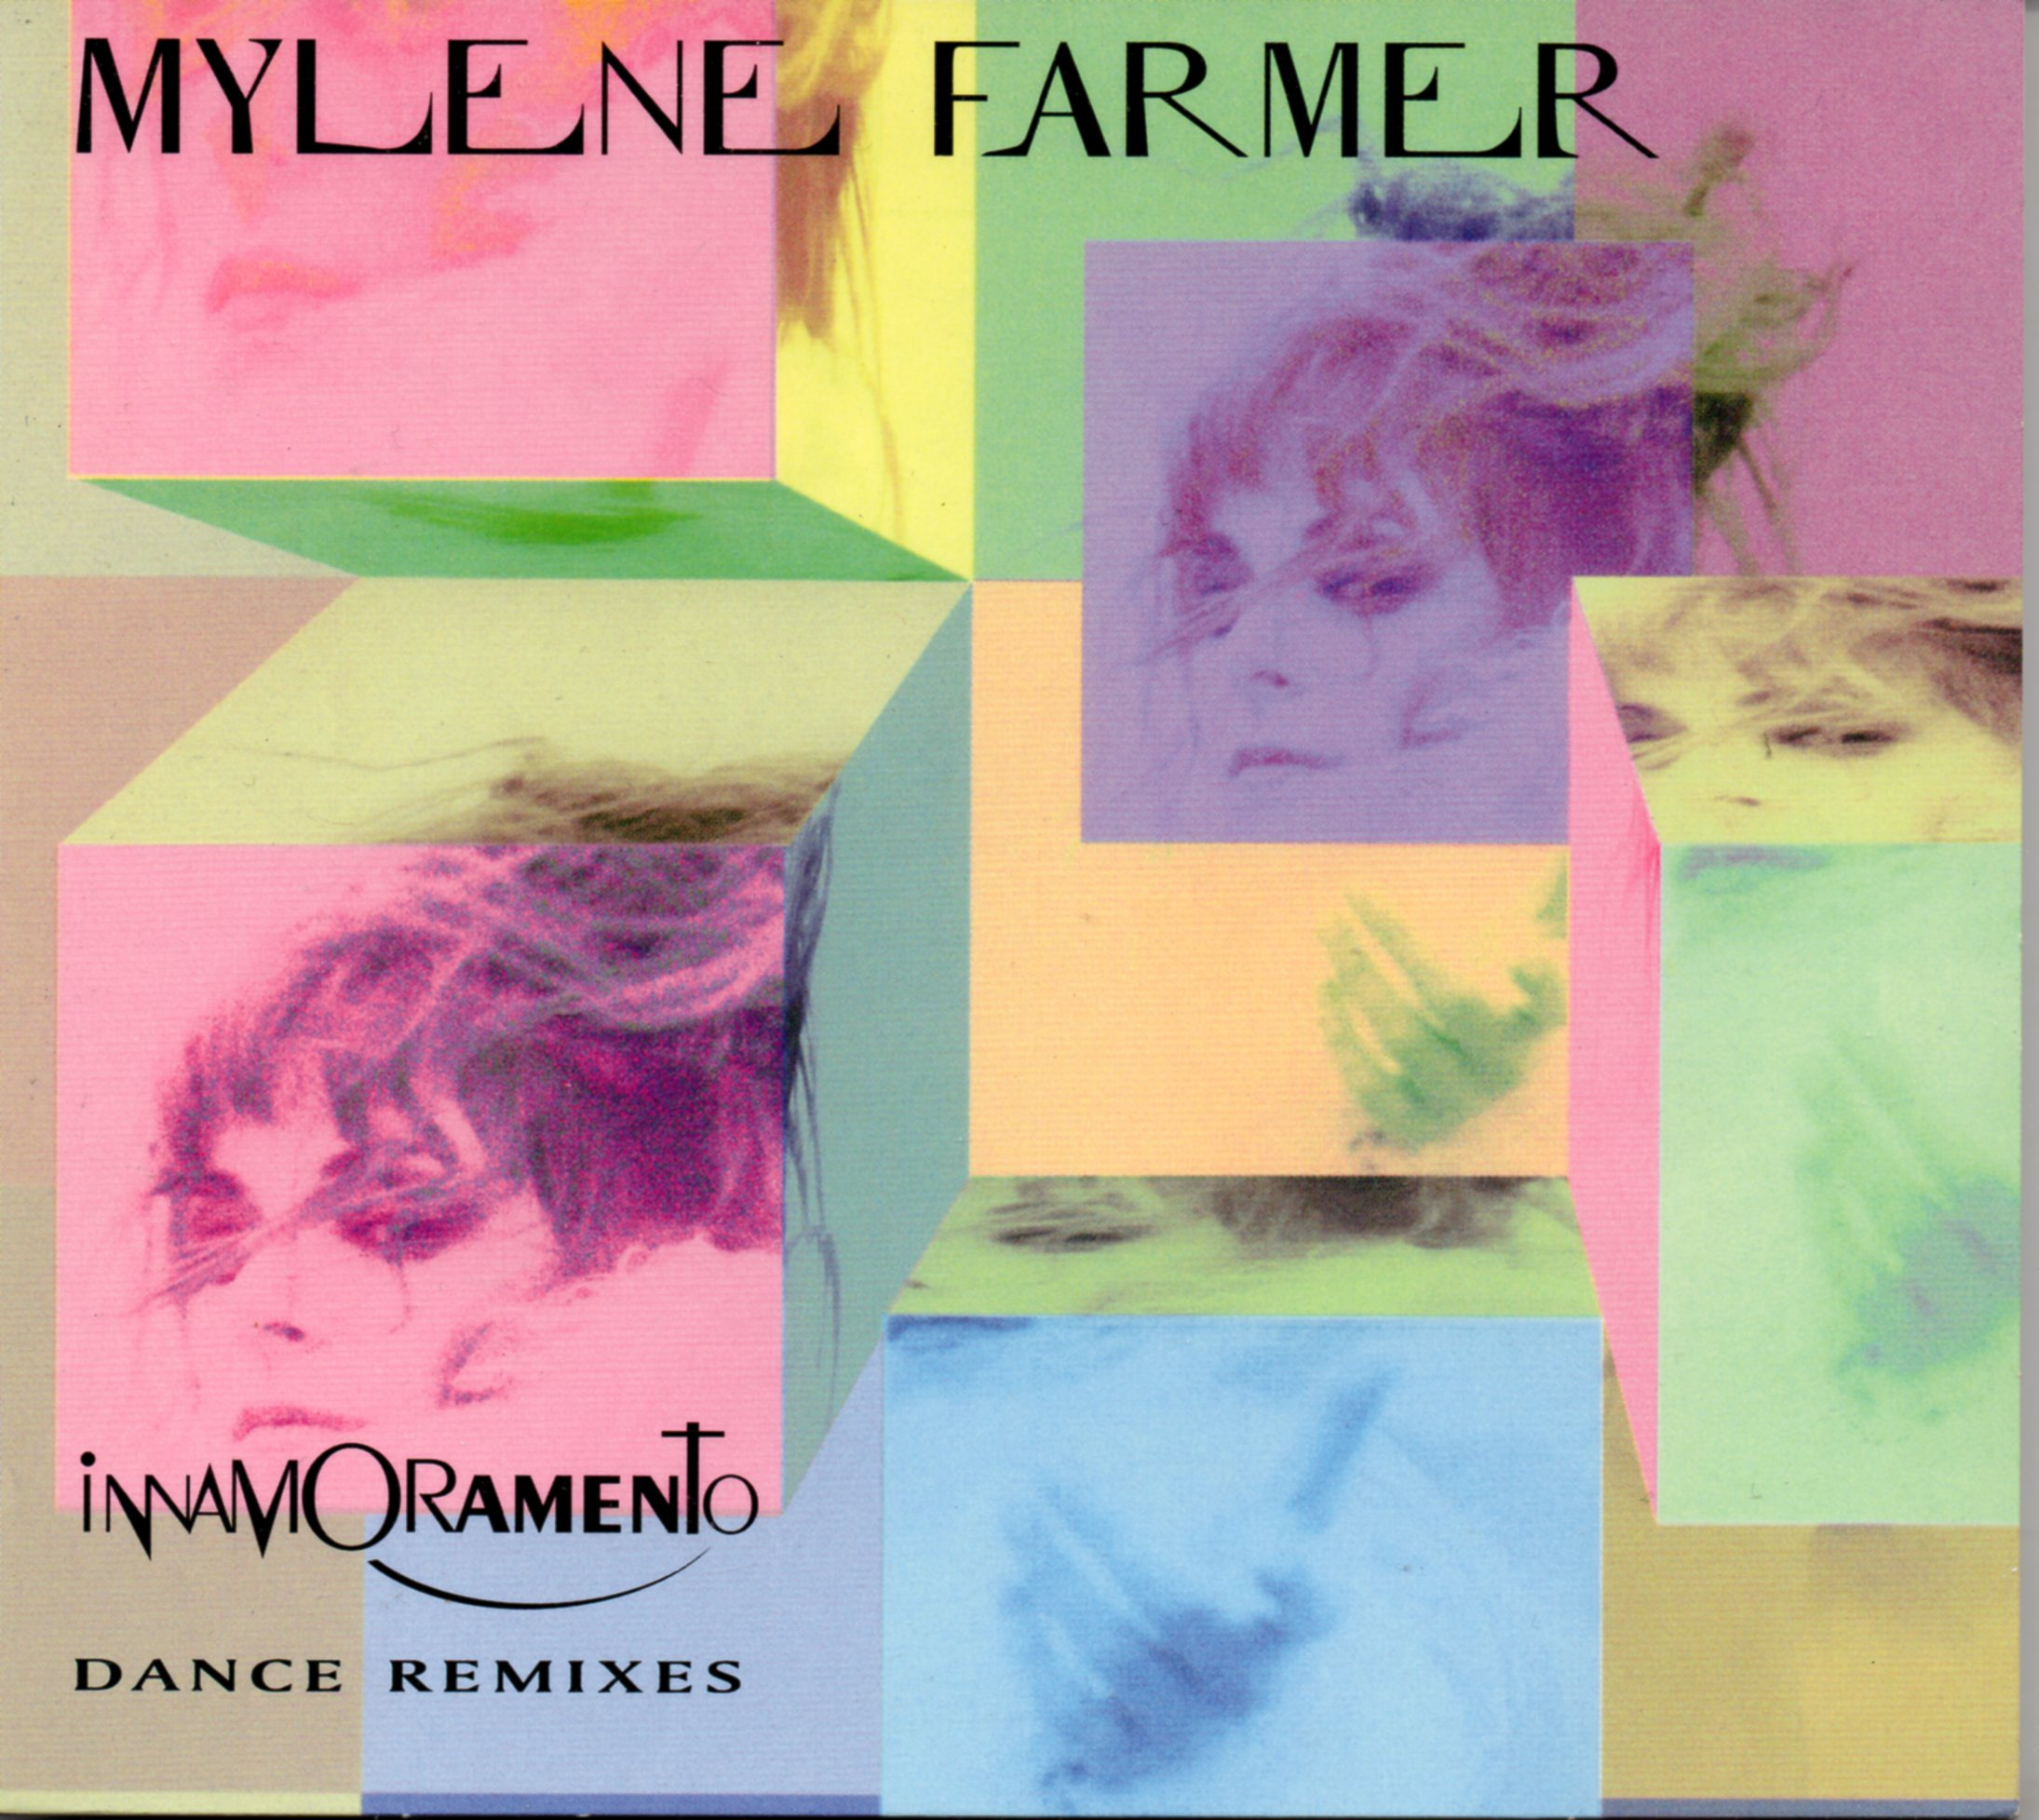 MYLÈNE FARMER - Inamoramento - The Remixes 4-TRACK Digipack - CD Maxi